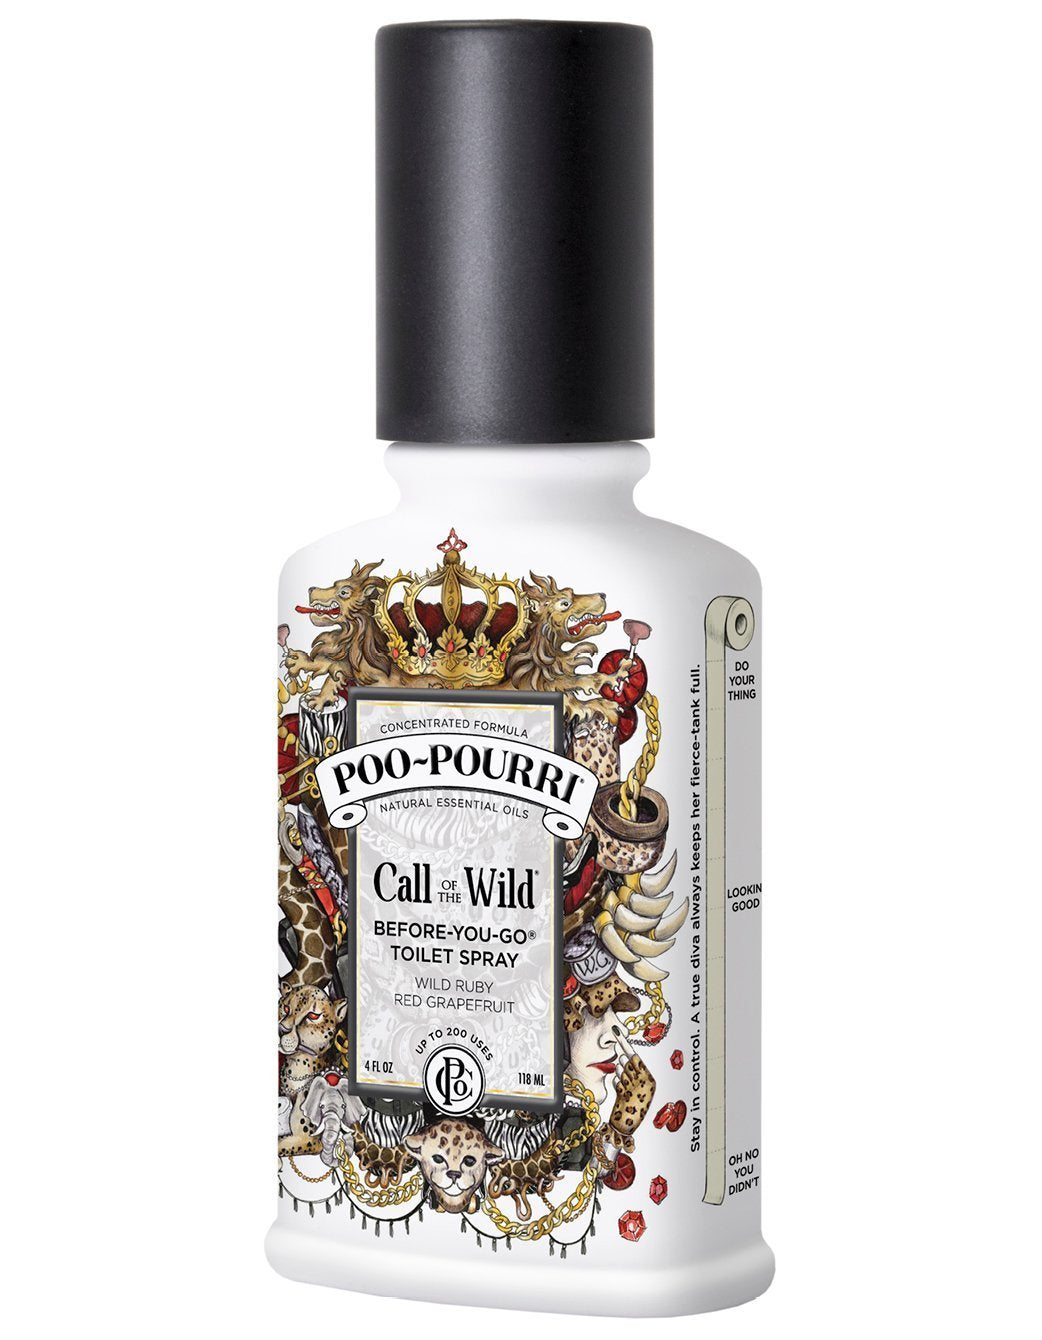 New Packaging Poo-Pourri Call of the Wild, 4oz Bottle